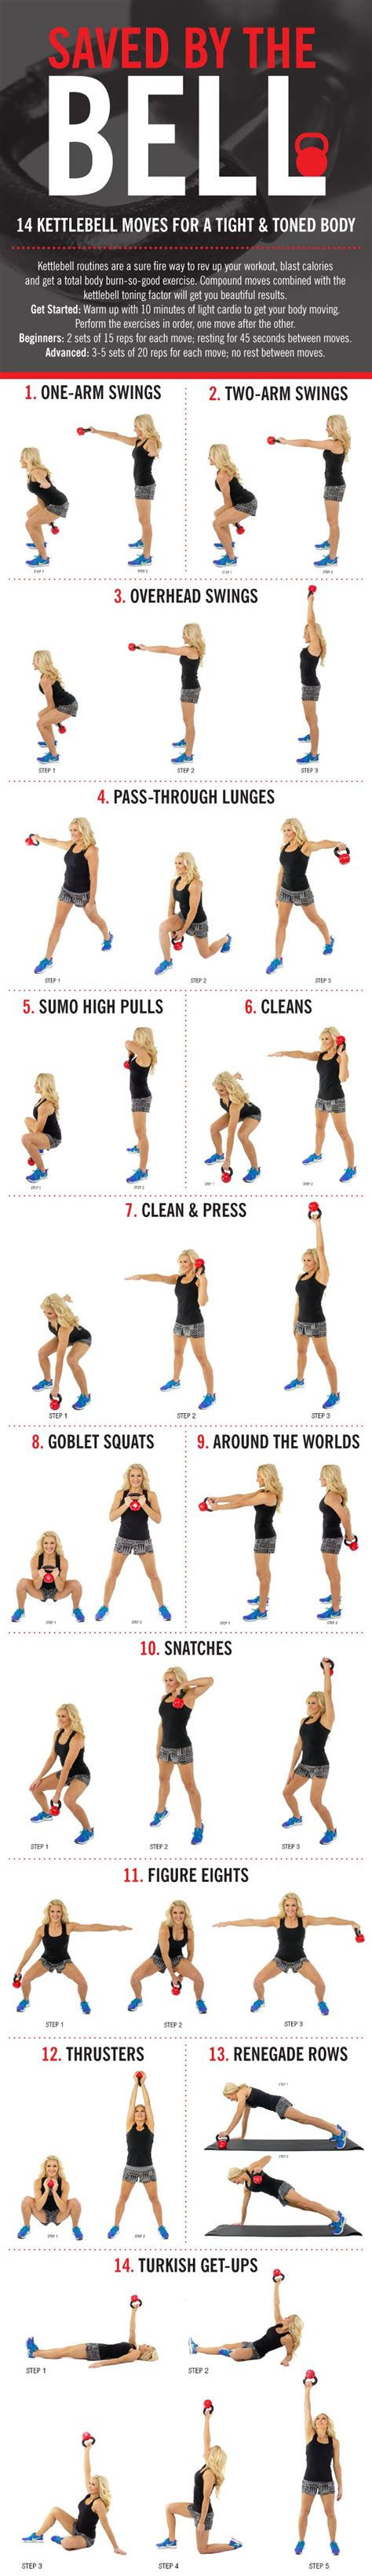 kettlebell moves body infographic weight muscles toned tight kettle workout bell exercises workouts exercise kettlebells challenge bells ball strength whole